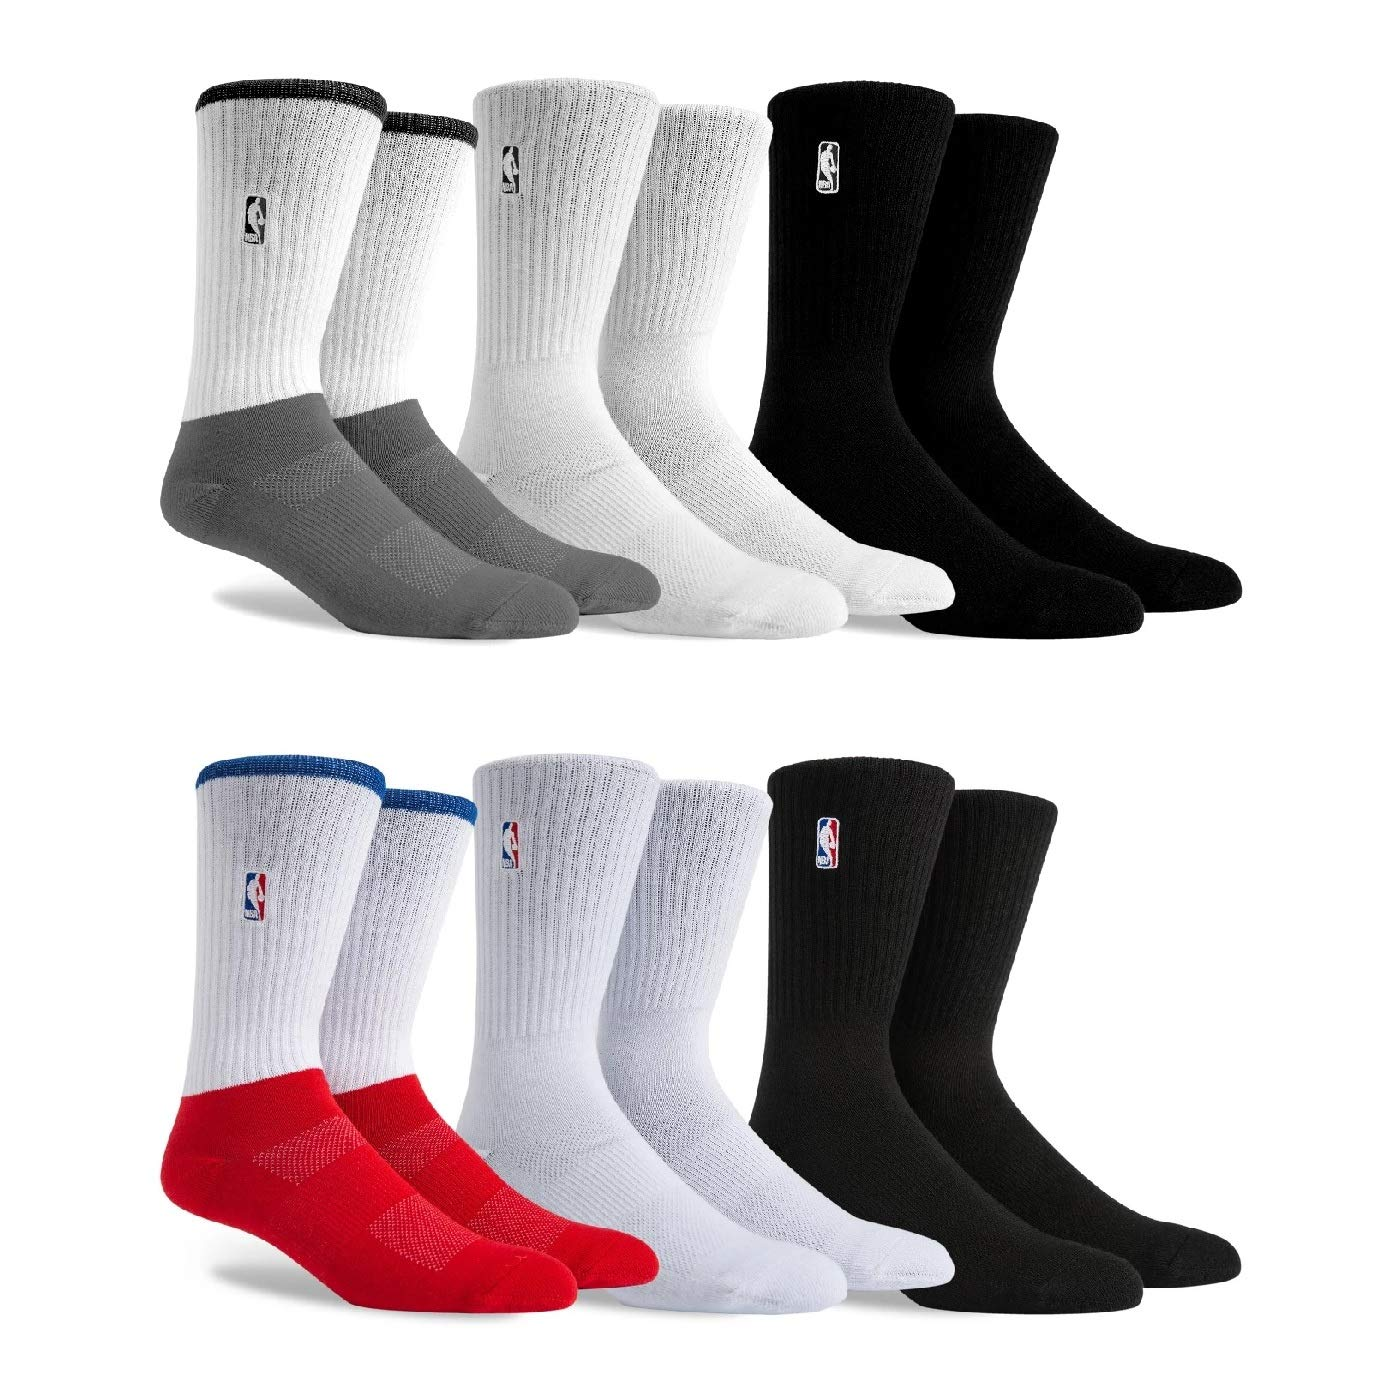 PKWY Mens NBA Logoman Mixed 6-Pack Crew Socks